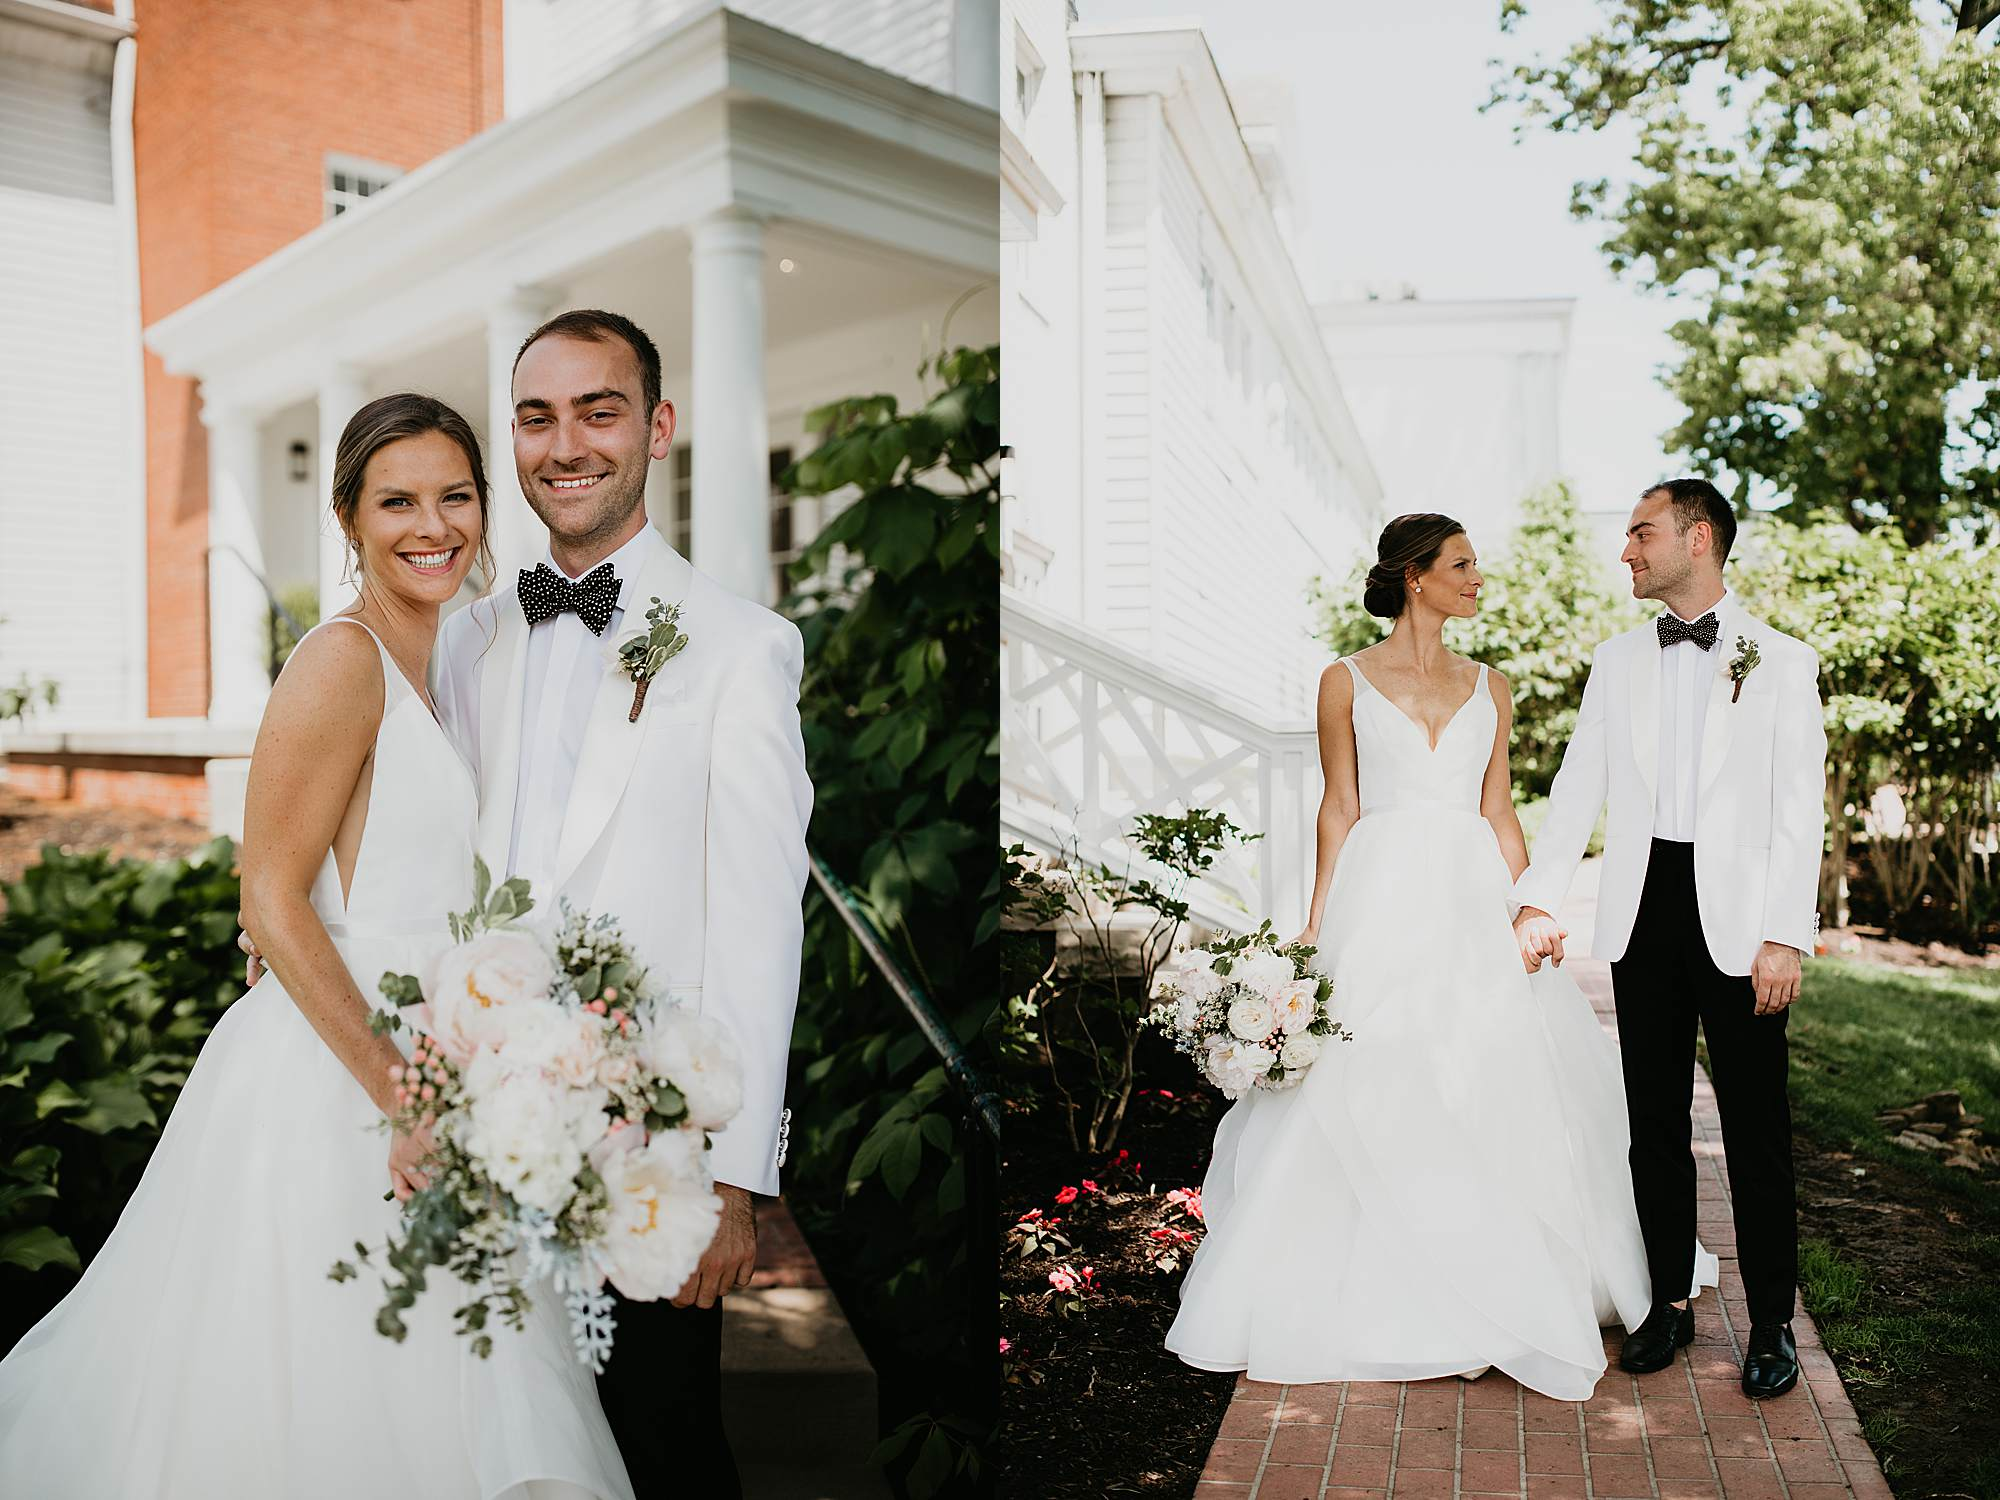 Pittsburgh Wedding Photography, Classic Elegant wedding at the Allegheny country club, Rachel Rowland Photography, country club wedding. bridal beginning